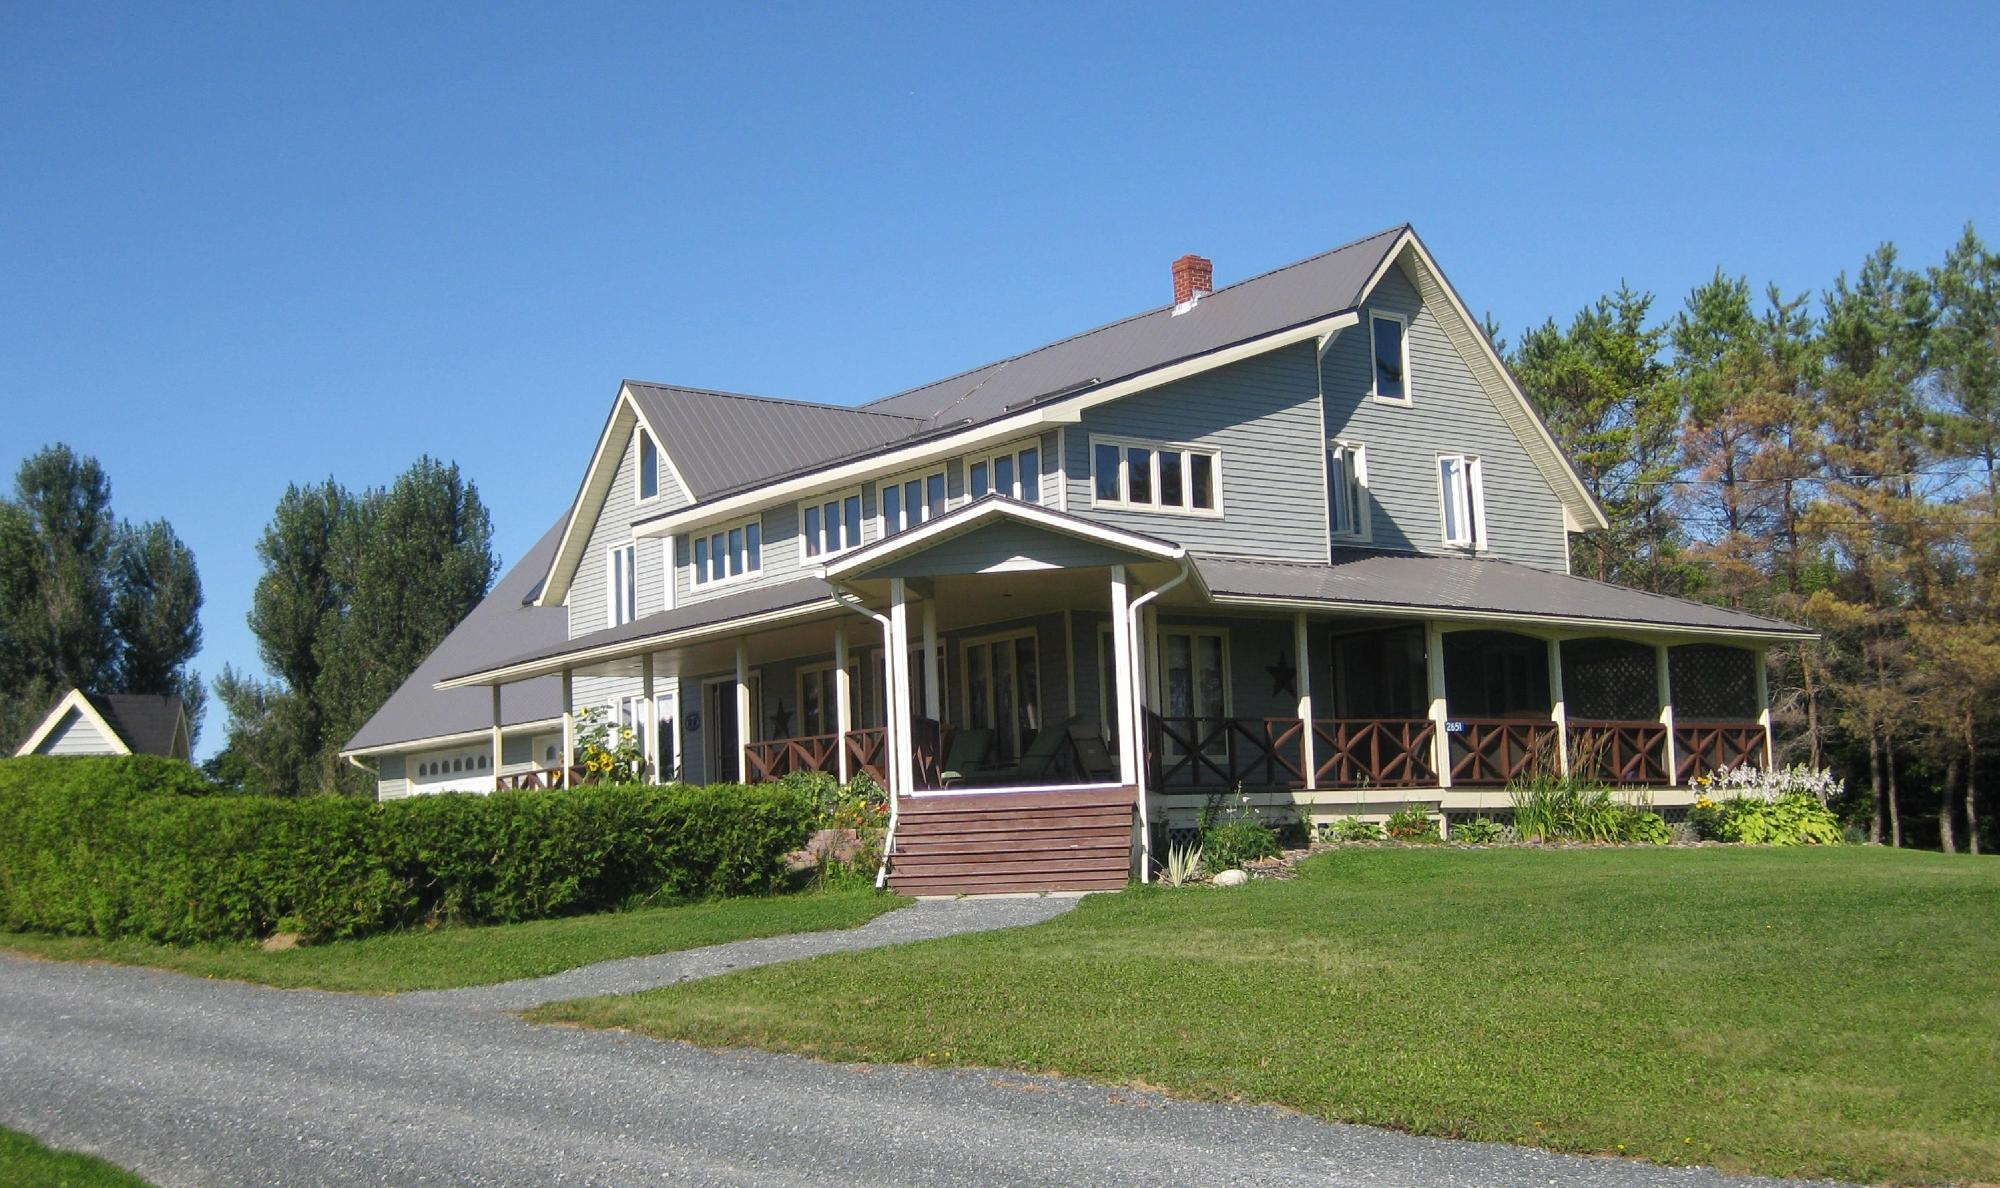 Covered Bridge Bed and Breakfast